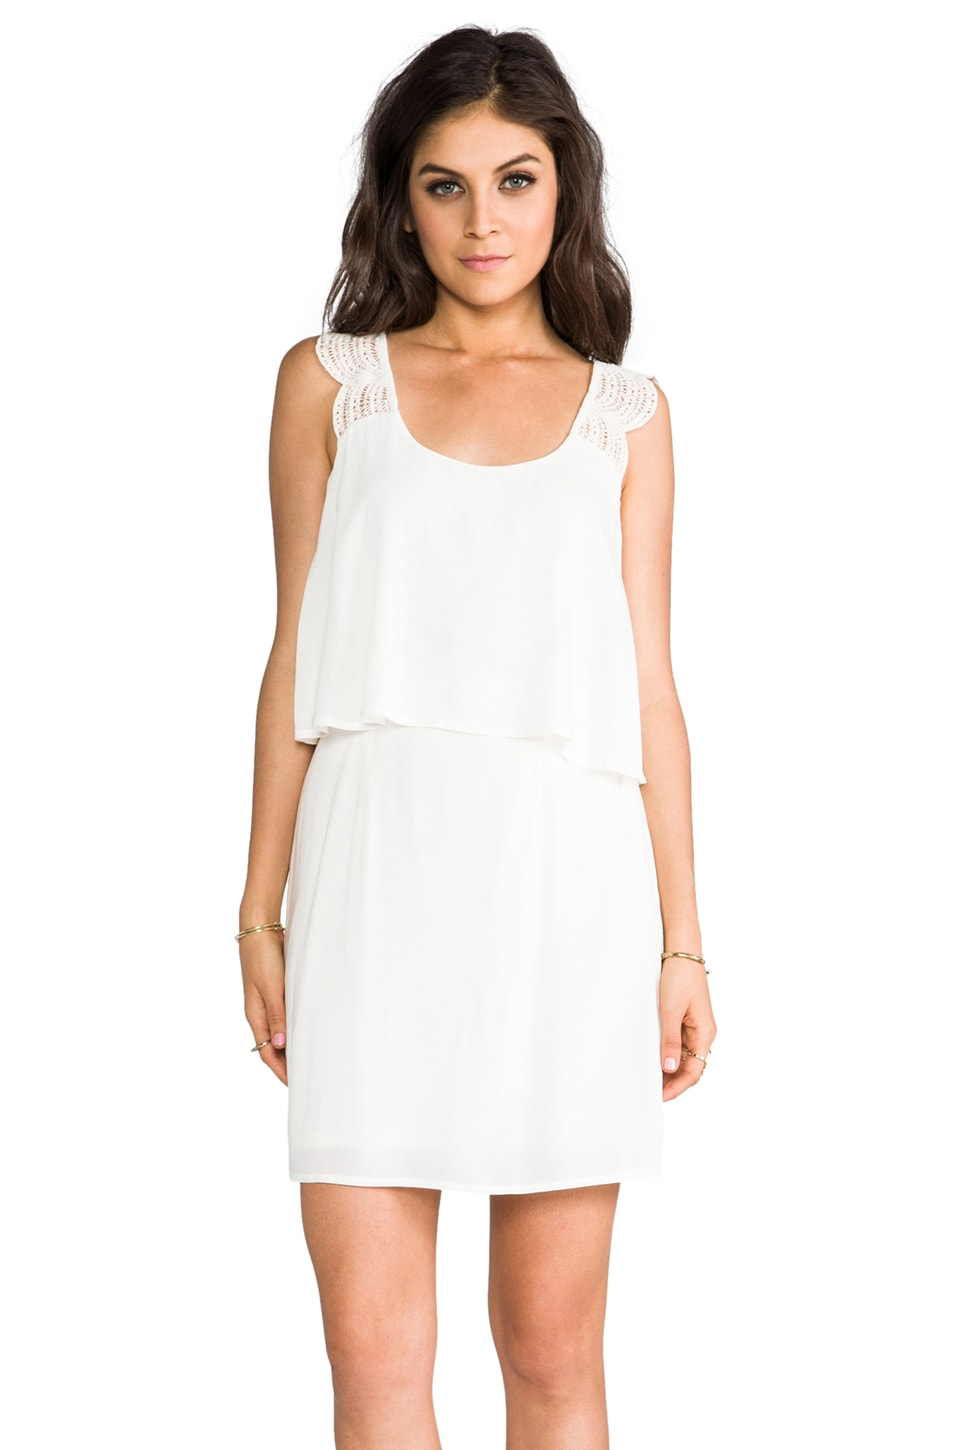 Ella Moss Lillian Lace Tank Dress in Natural